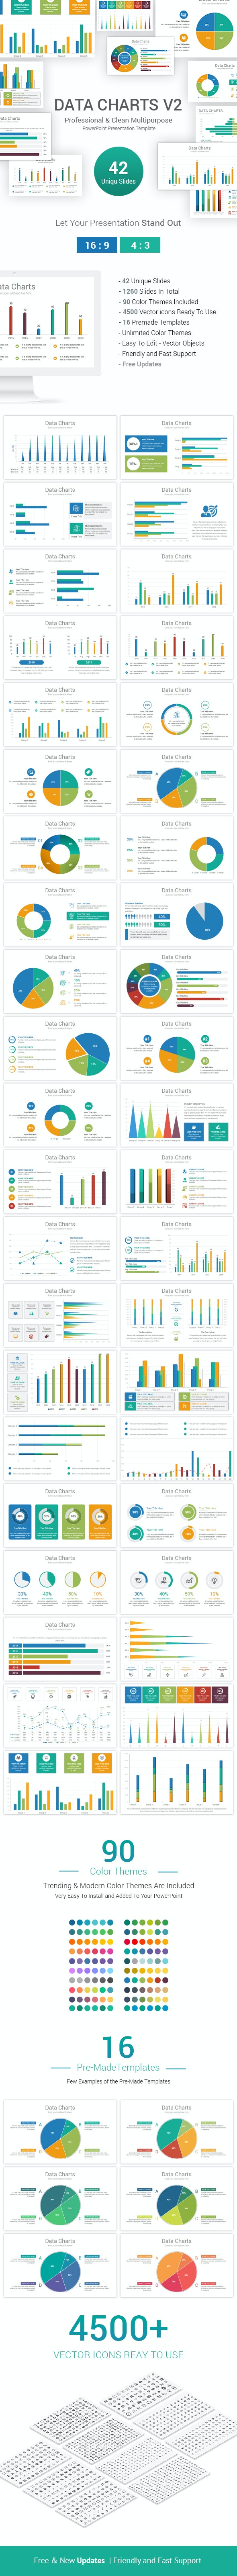 Data Charts PowerPoint Template V2 - Finance PowerPoint Templates